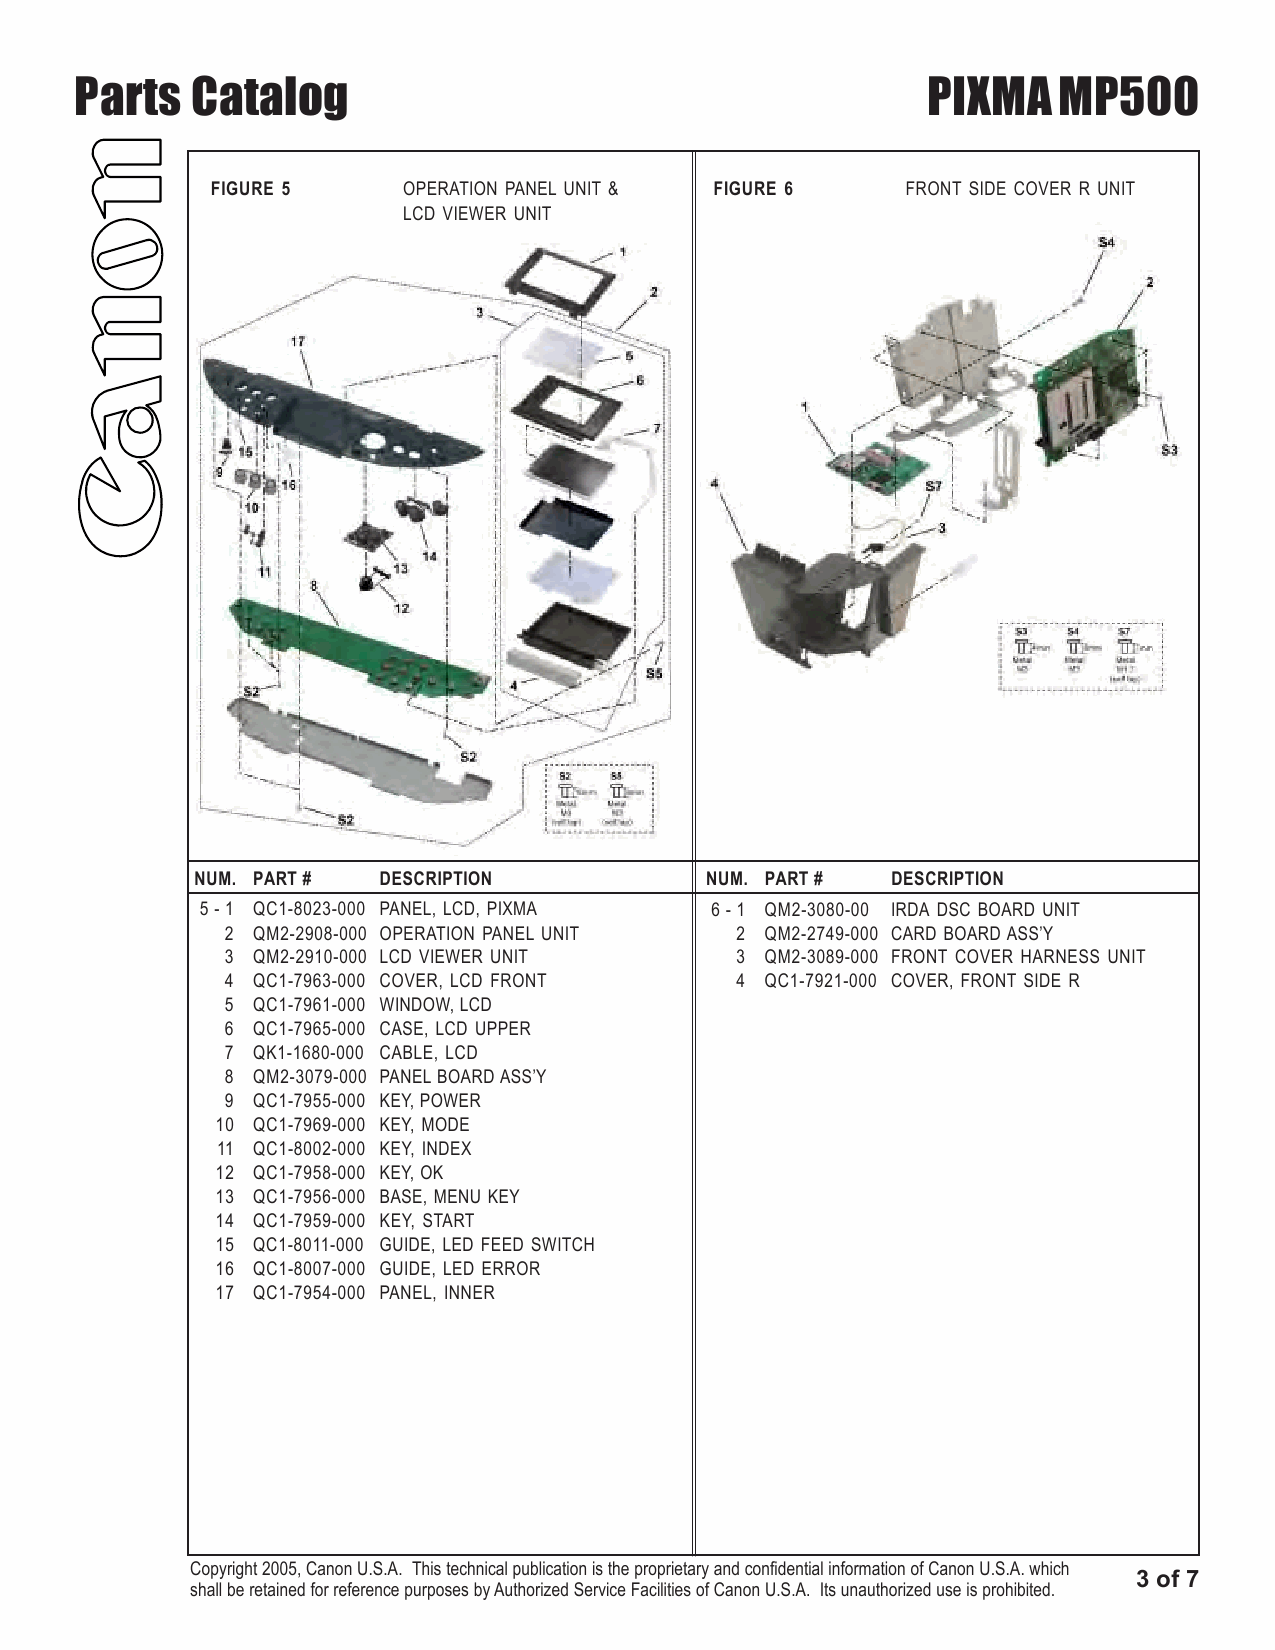 Canon PIXMA MP500 Parts Catalog Manual-4